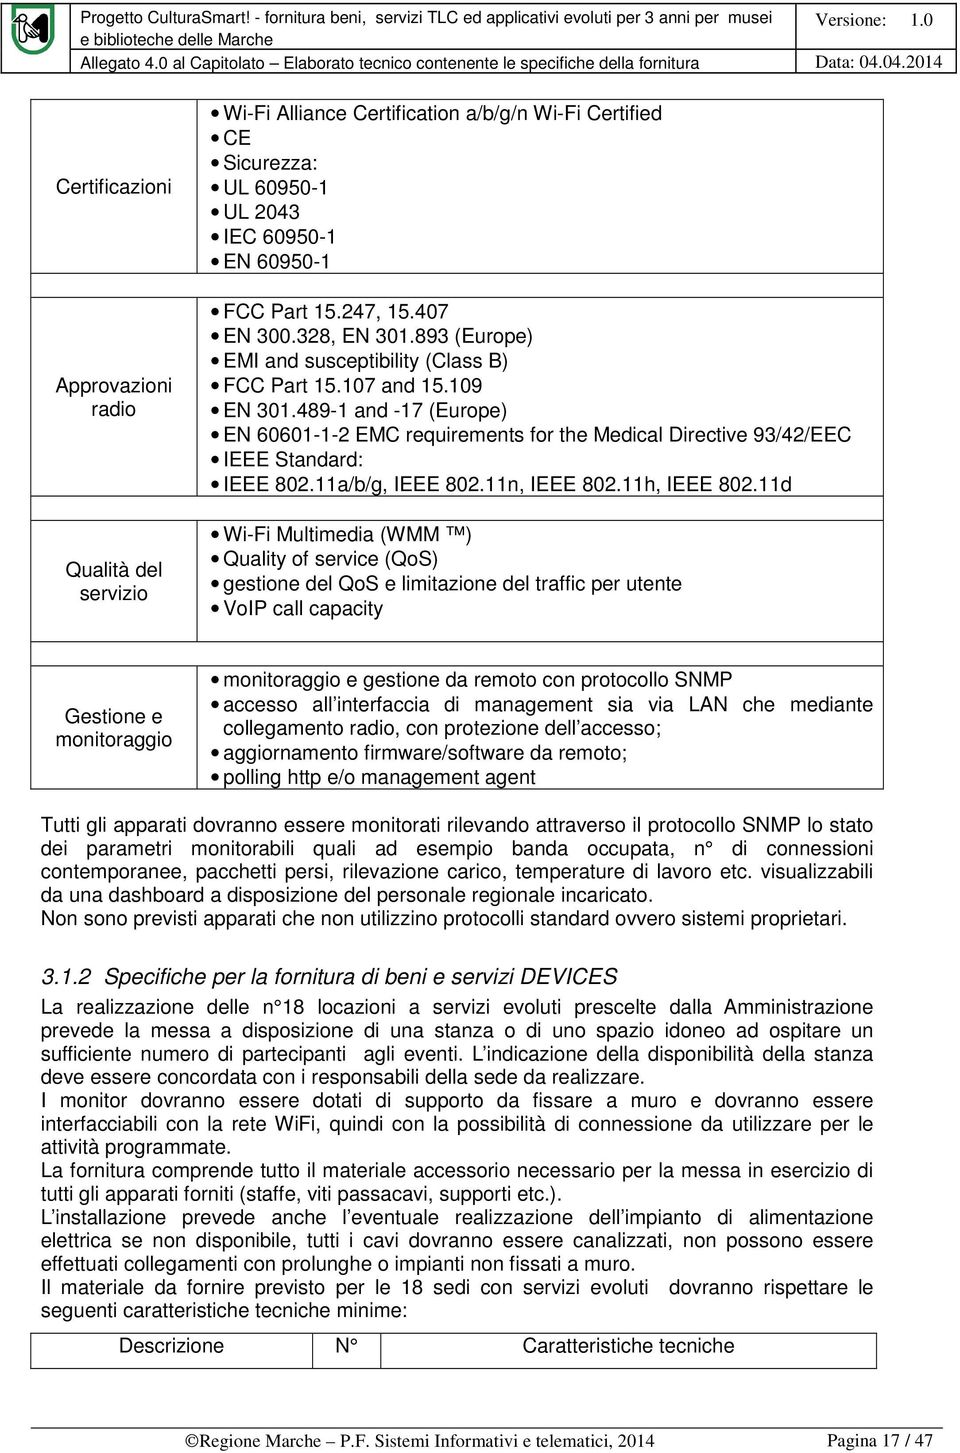 489-1 and -17 (Europe) EN 60601-1-2 EMC requirements for the Medical Directive 93/42/EEC IEEE Standard: IEEE 802.11a/b/g, IEEE 802.11n, IEEE 802.11h, IEEE 802.